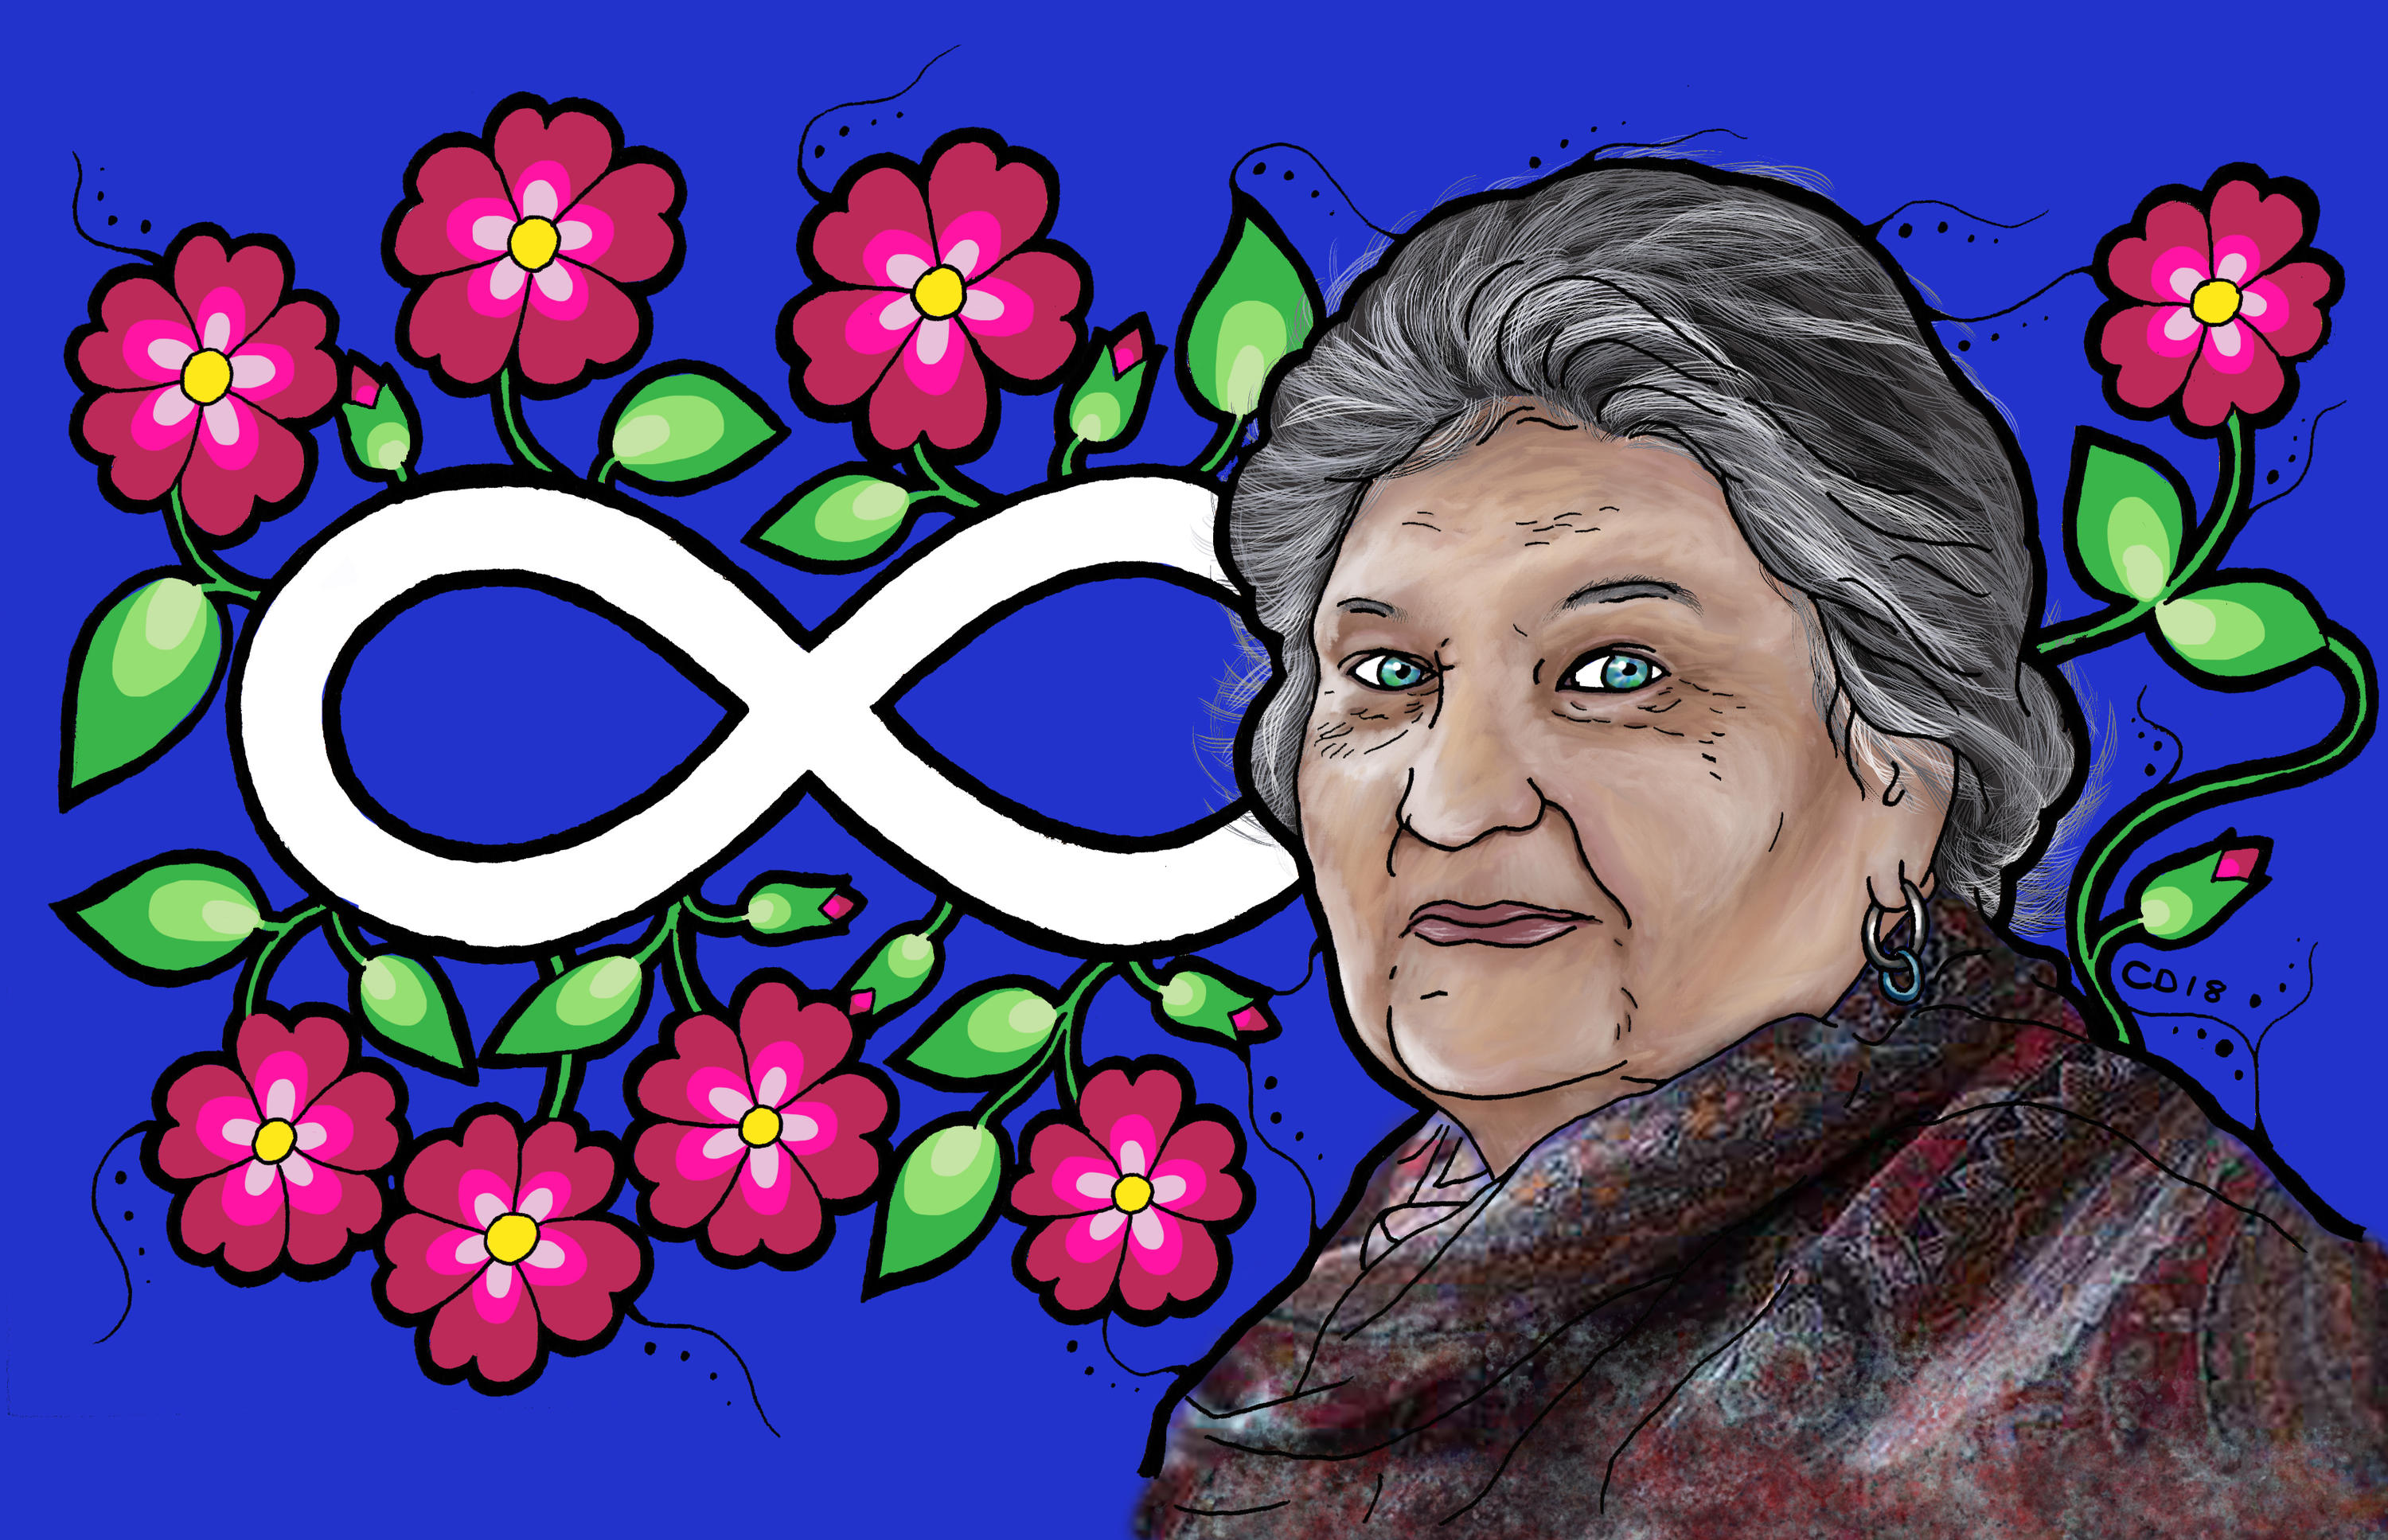 illustration of Maria Campbell with flowers and helix design